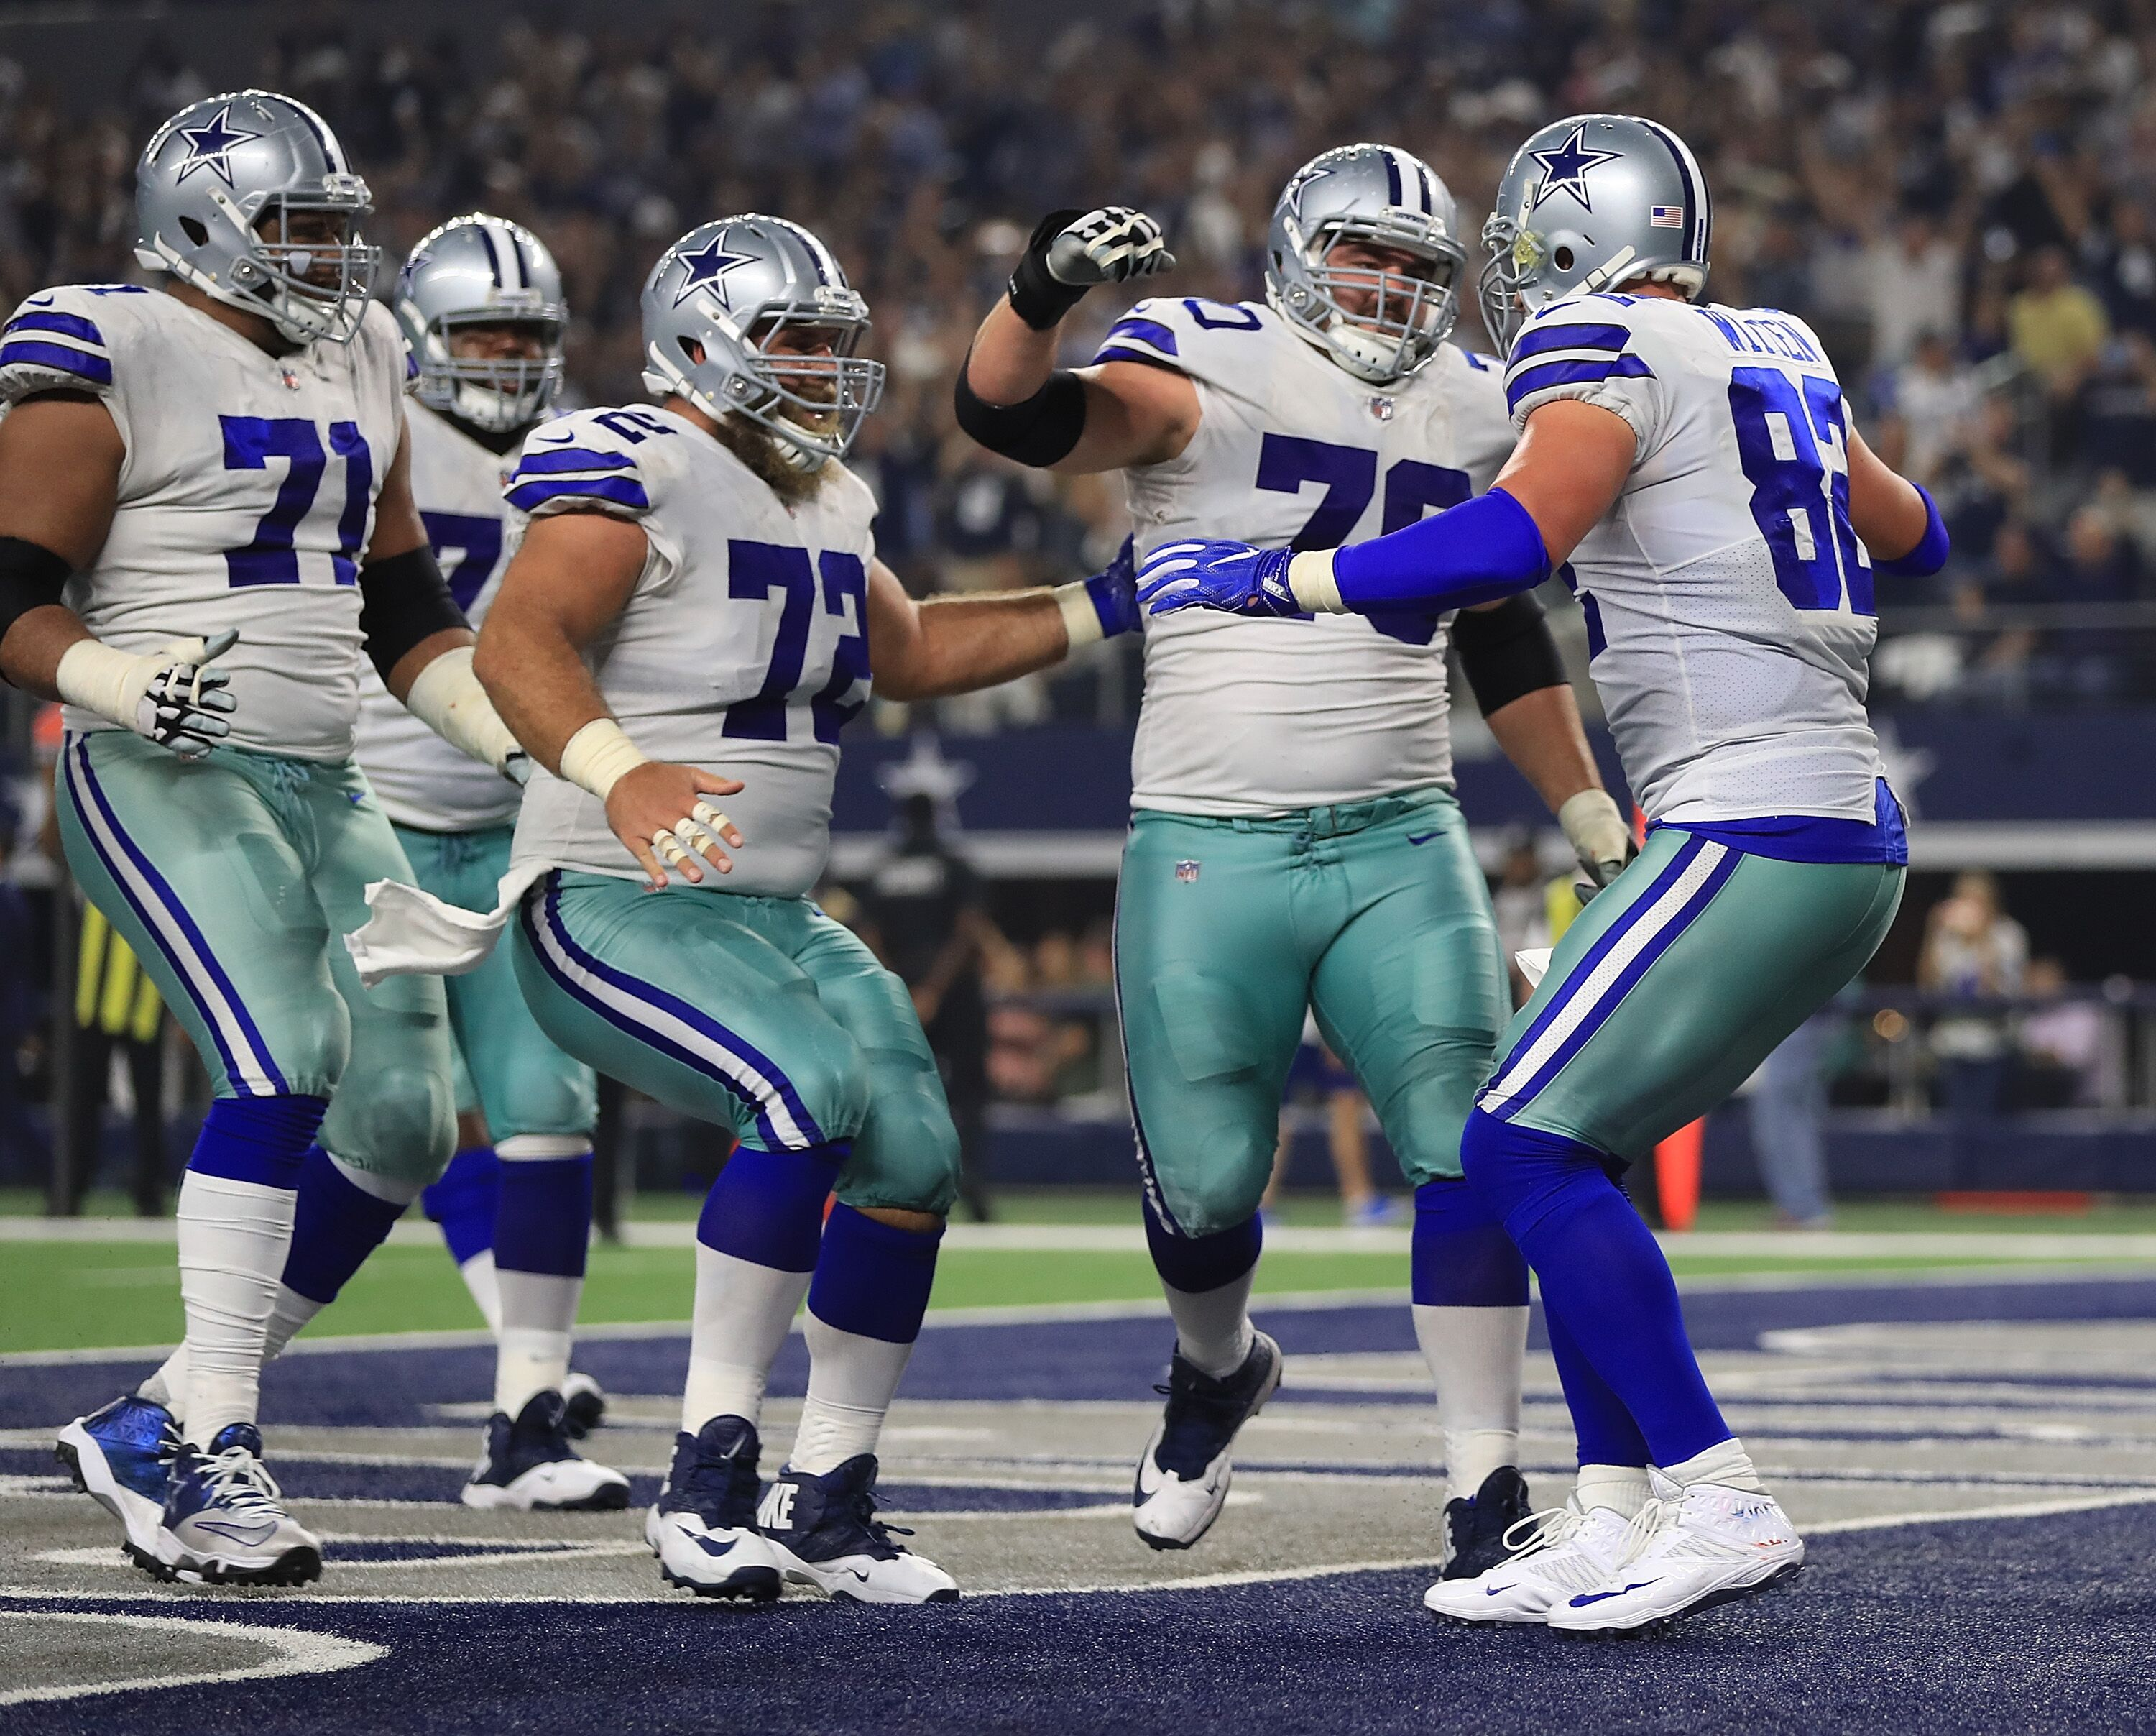 845444916-new-york-giants-vs-dallas-cowboys.jpg